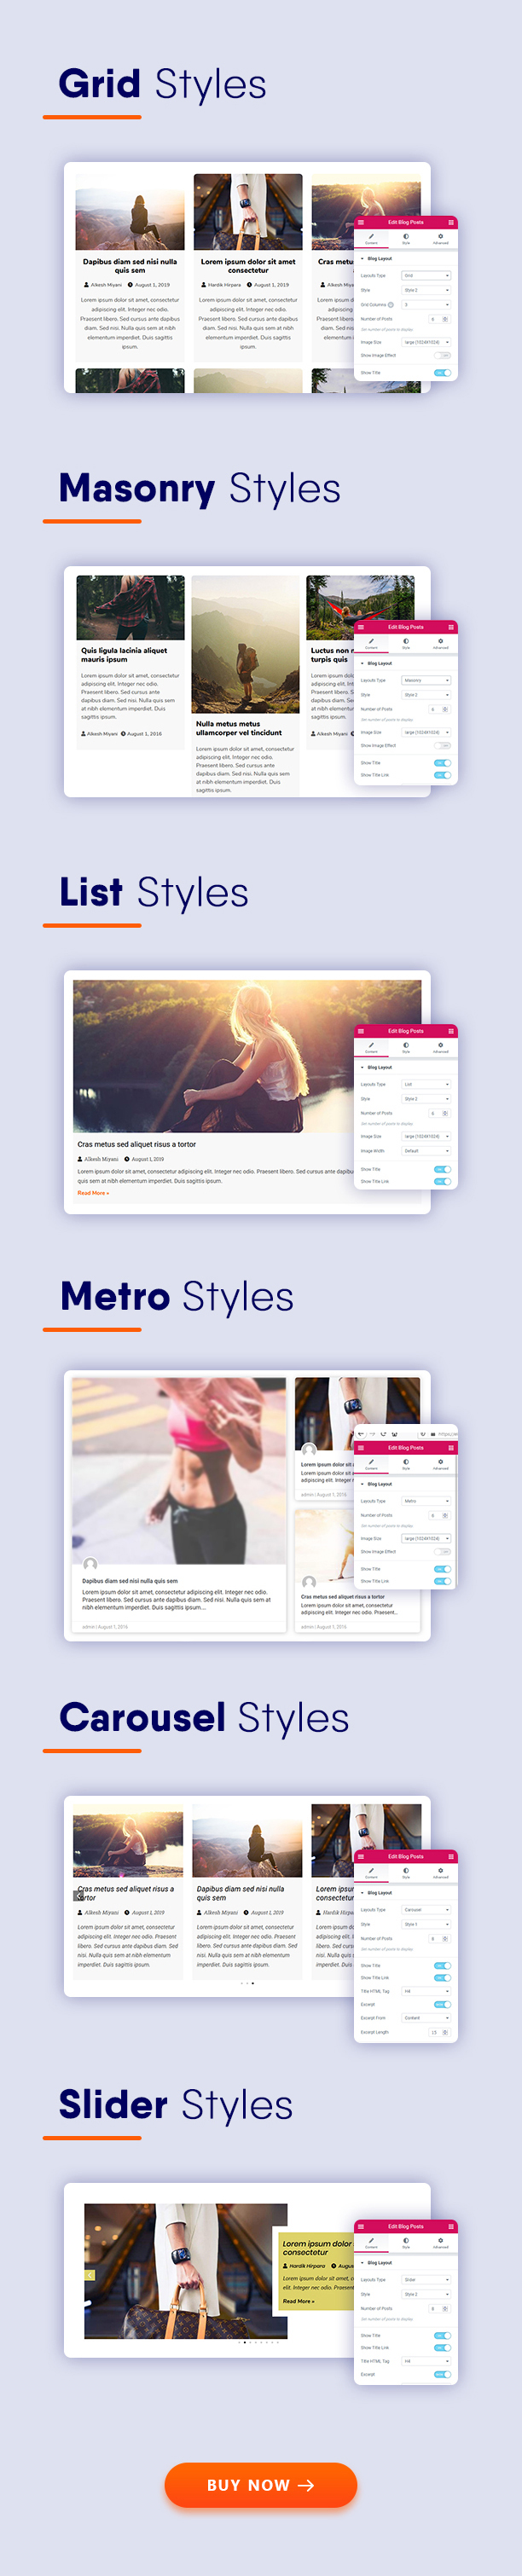 Different Layout Types - Blogmentor Pro for Elementor